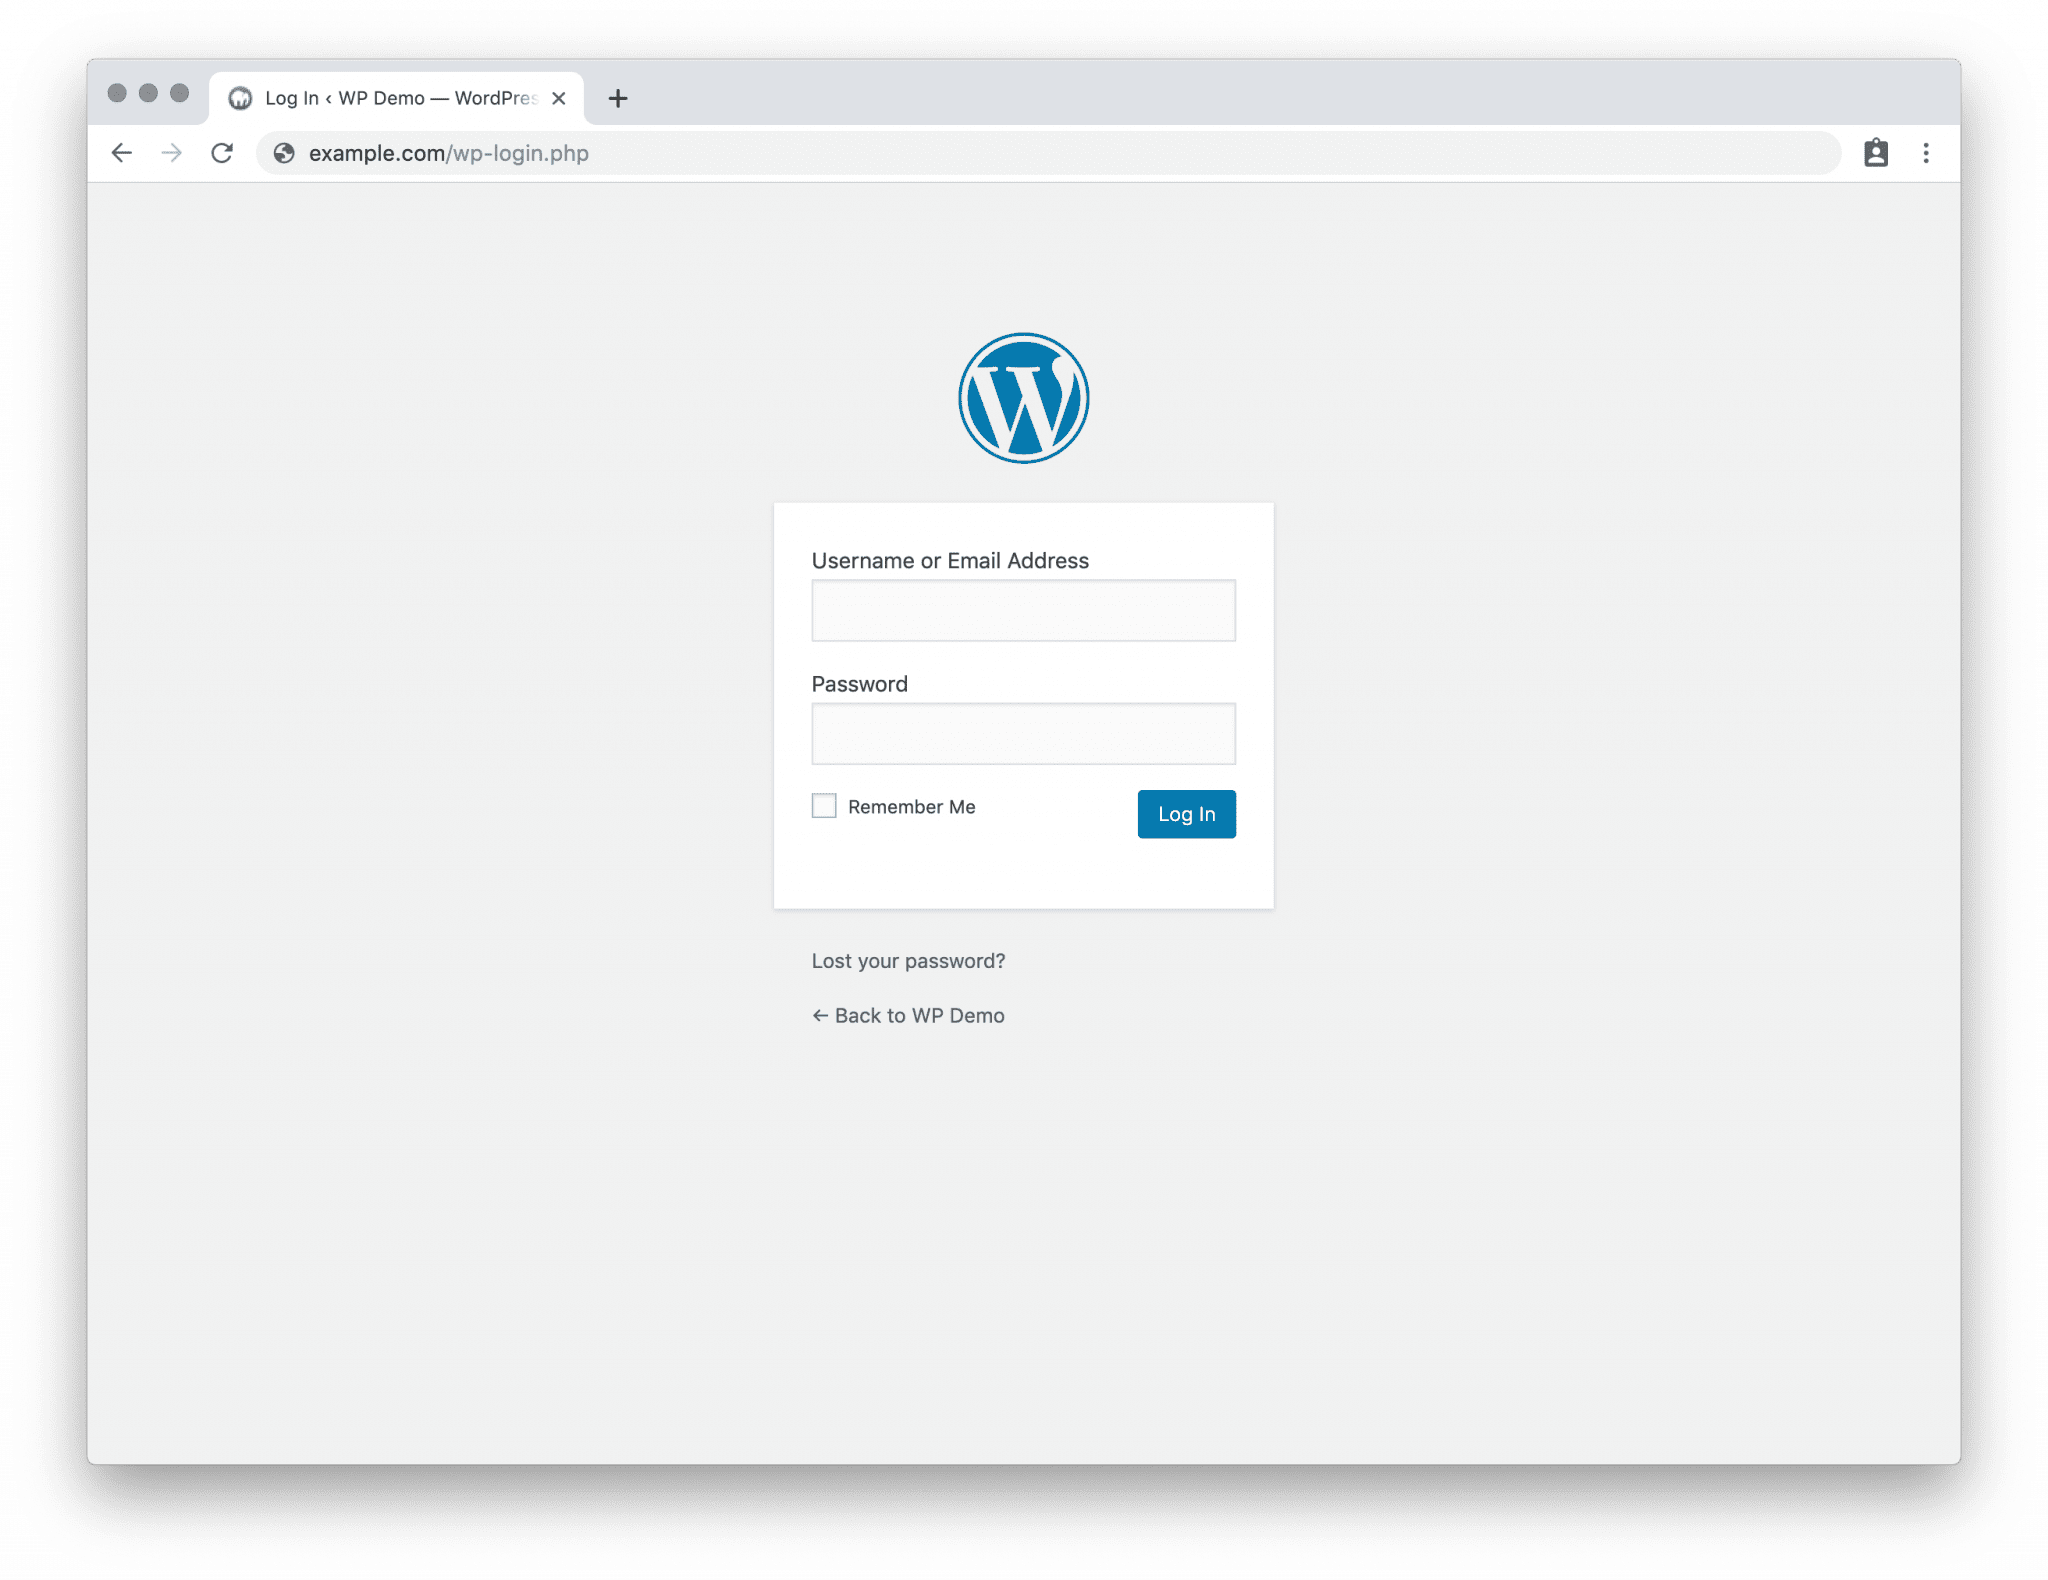 wordpress website login